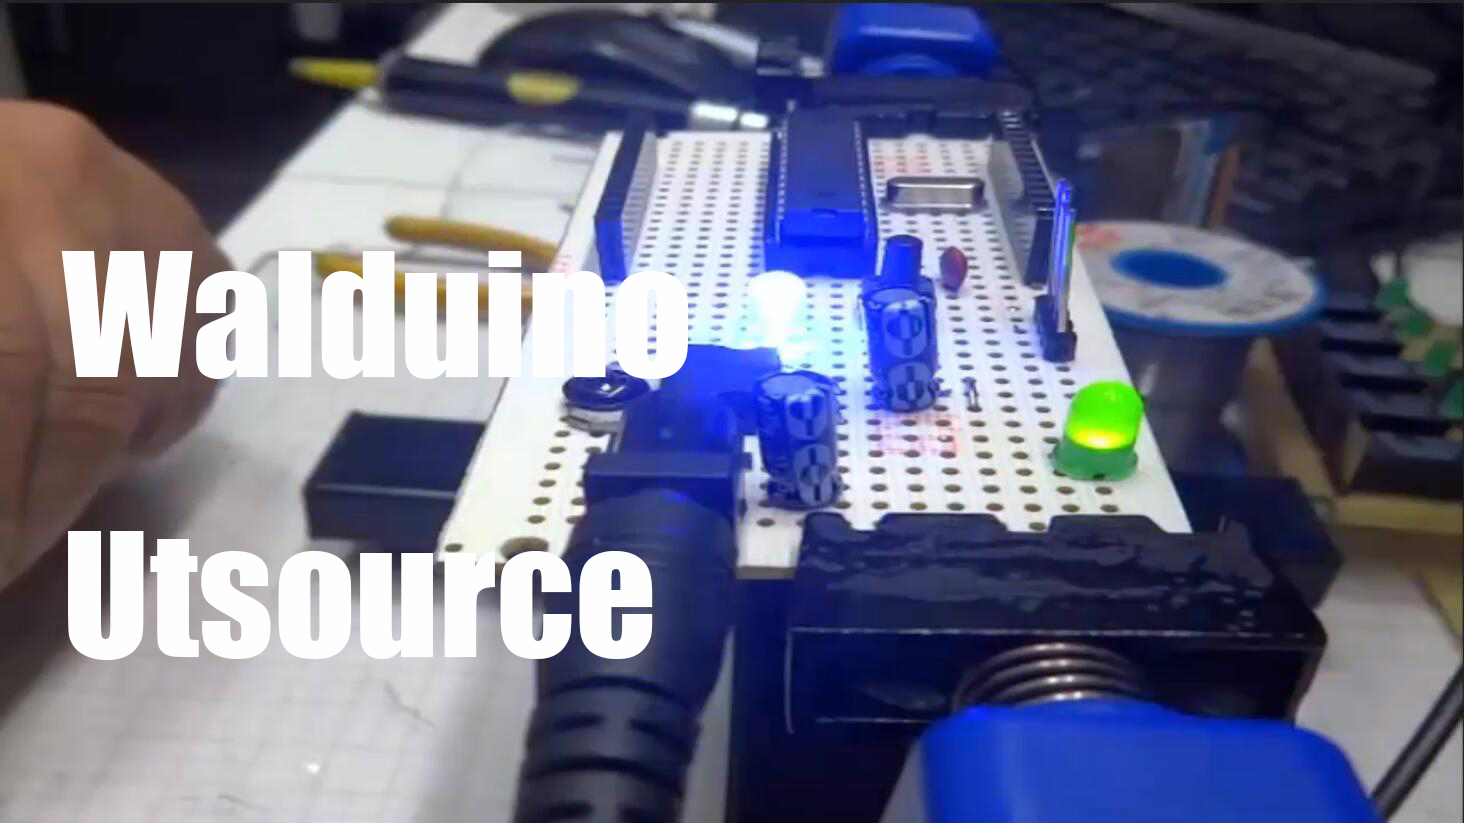 Walduino Utsource